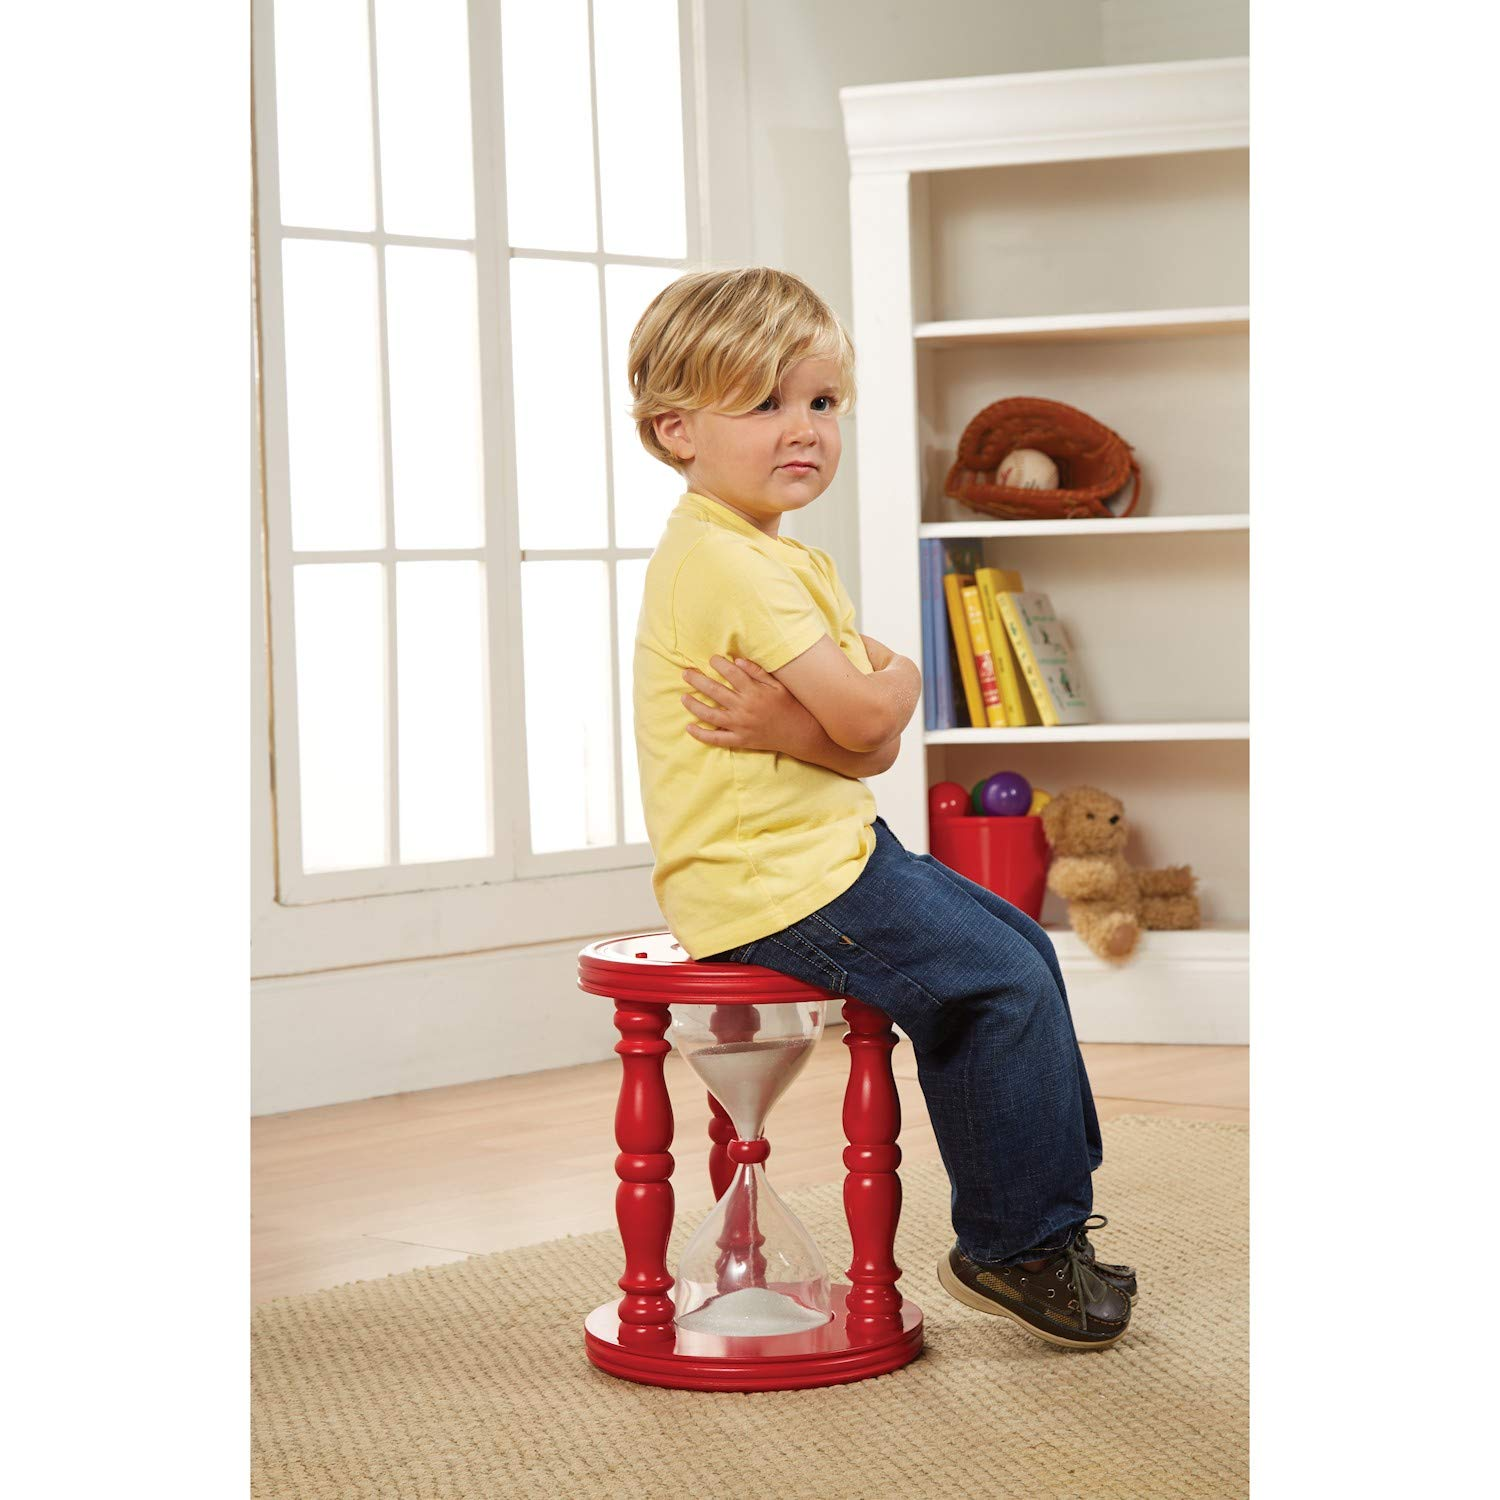 ART & ARTIFACT Red Wooden Time Out Stool for Children by ART & ARTIFACT